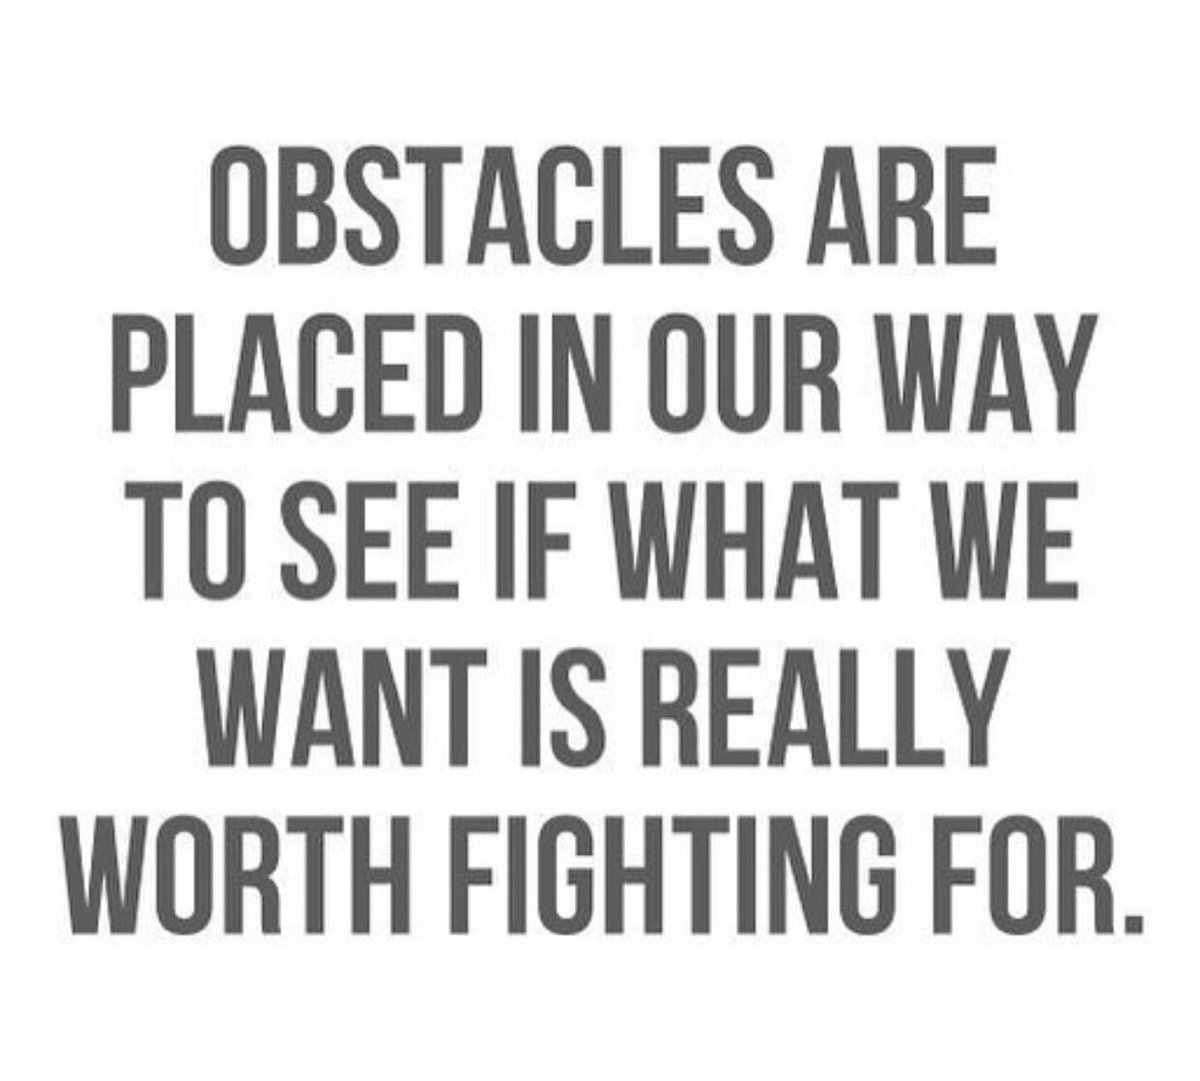 Motivational quote of the day! https://t.co/8mYROL57me